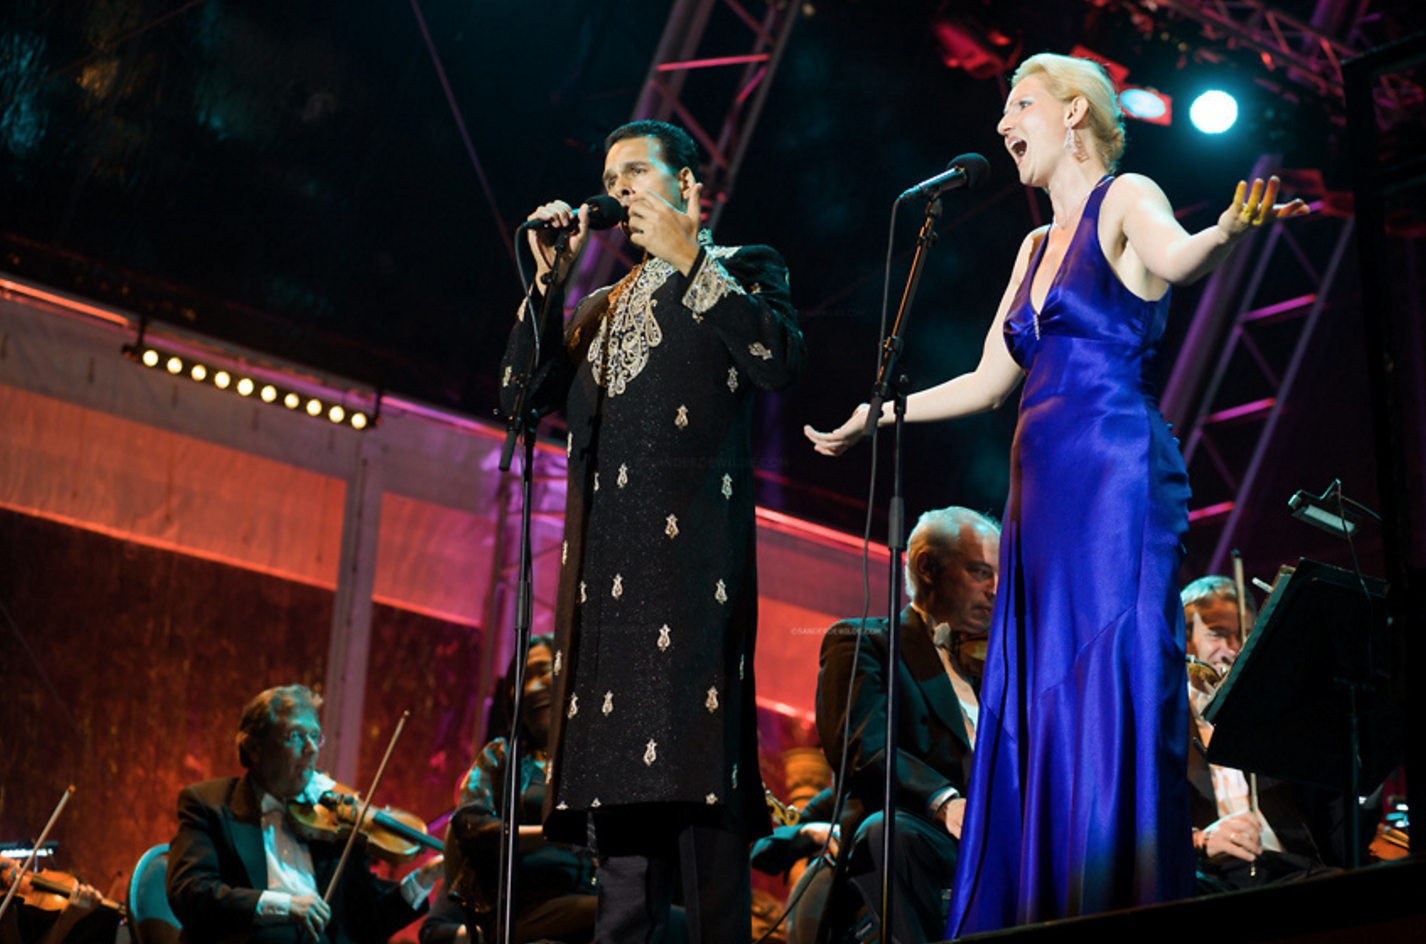 Paul Vincent Cable in a gala performance with the Rotterdam Philharmonic with his wife, Agnesa Tothova, singing soprano.